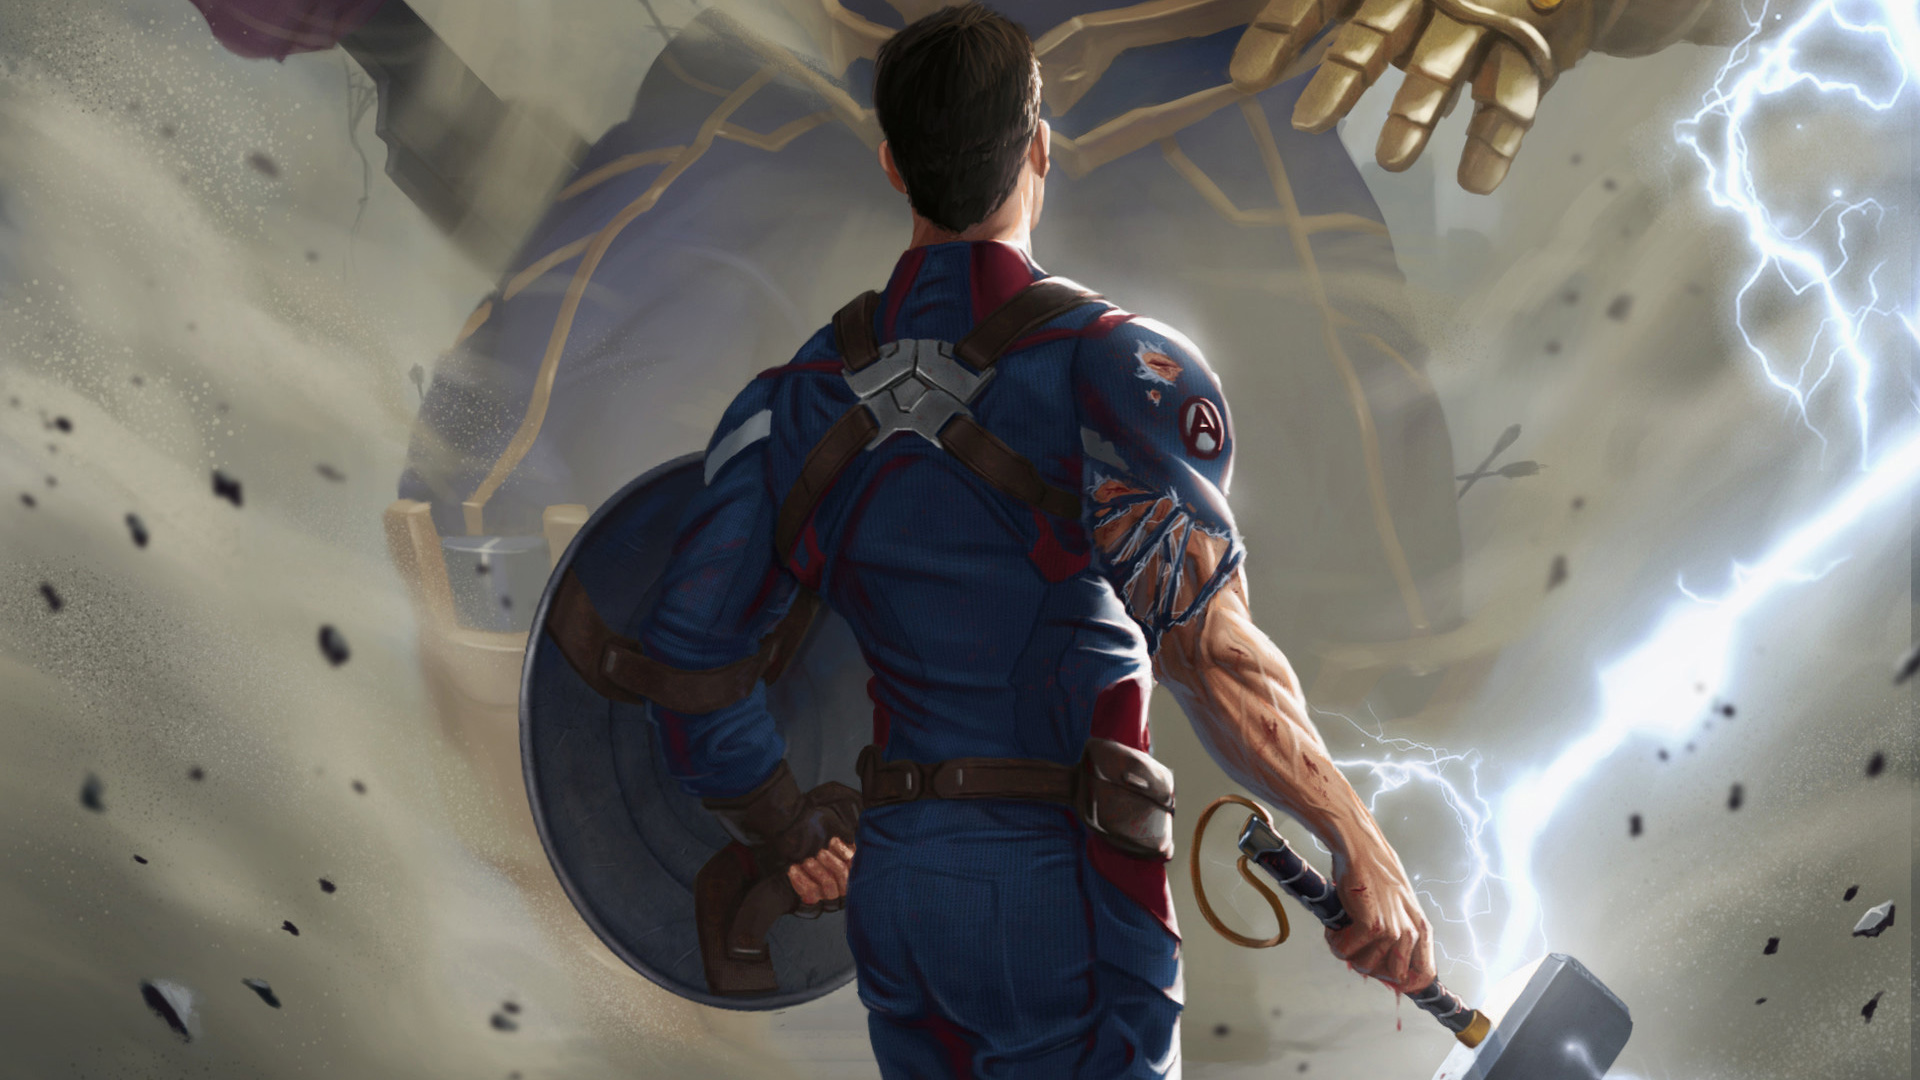 Captain america with thor hammer hd superheroes 4k wallpapers images backgrounds photos and - Thor hammer hd pics ...